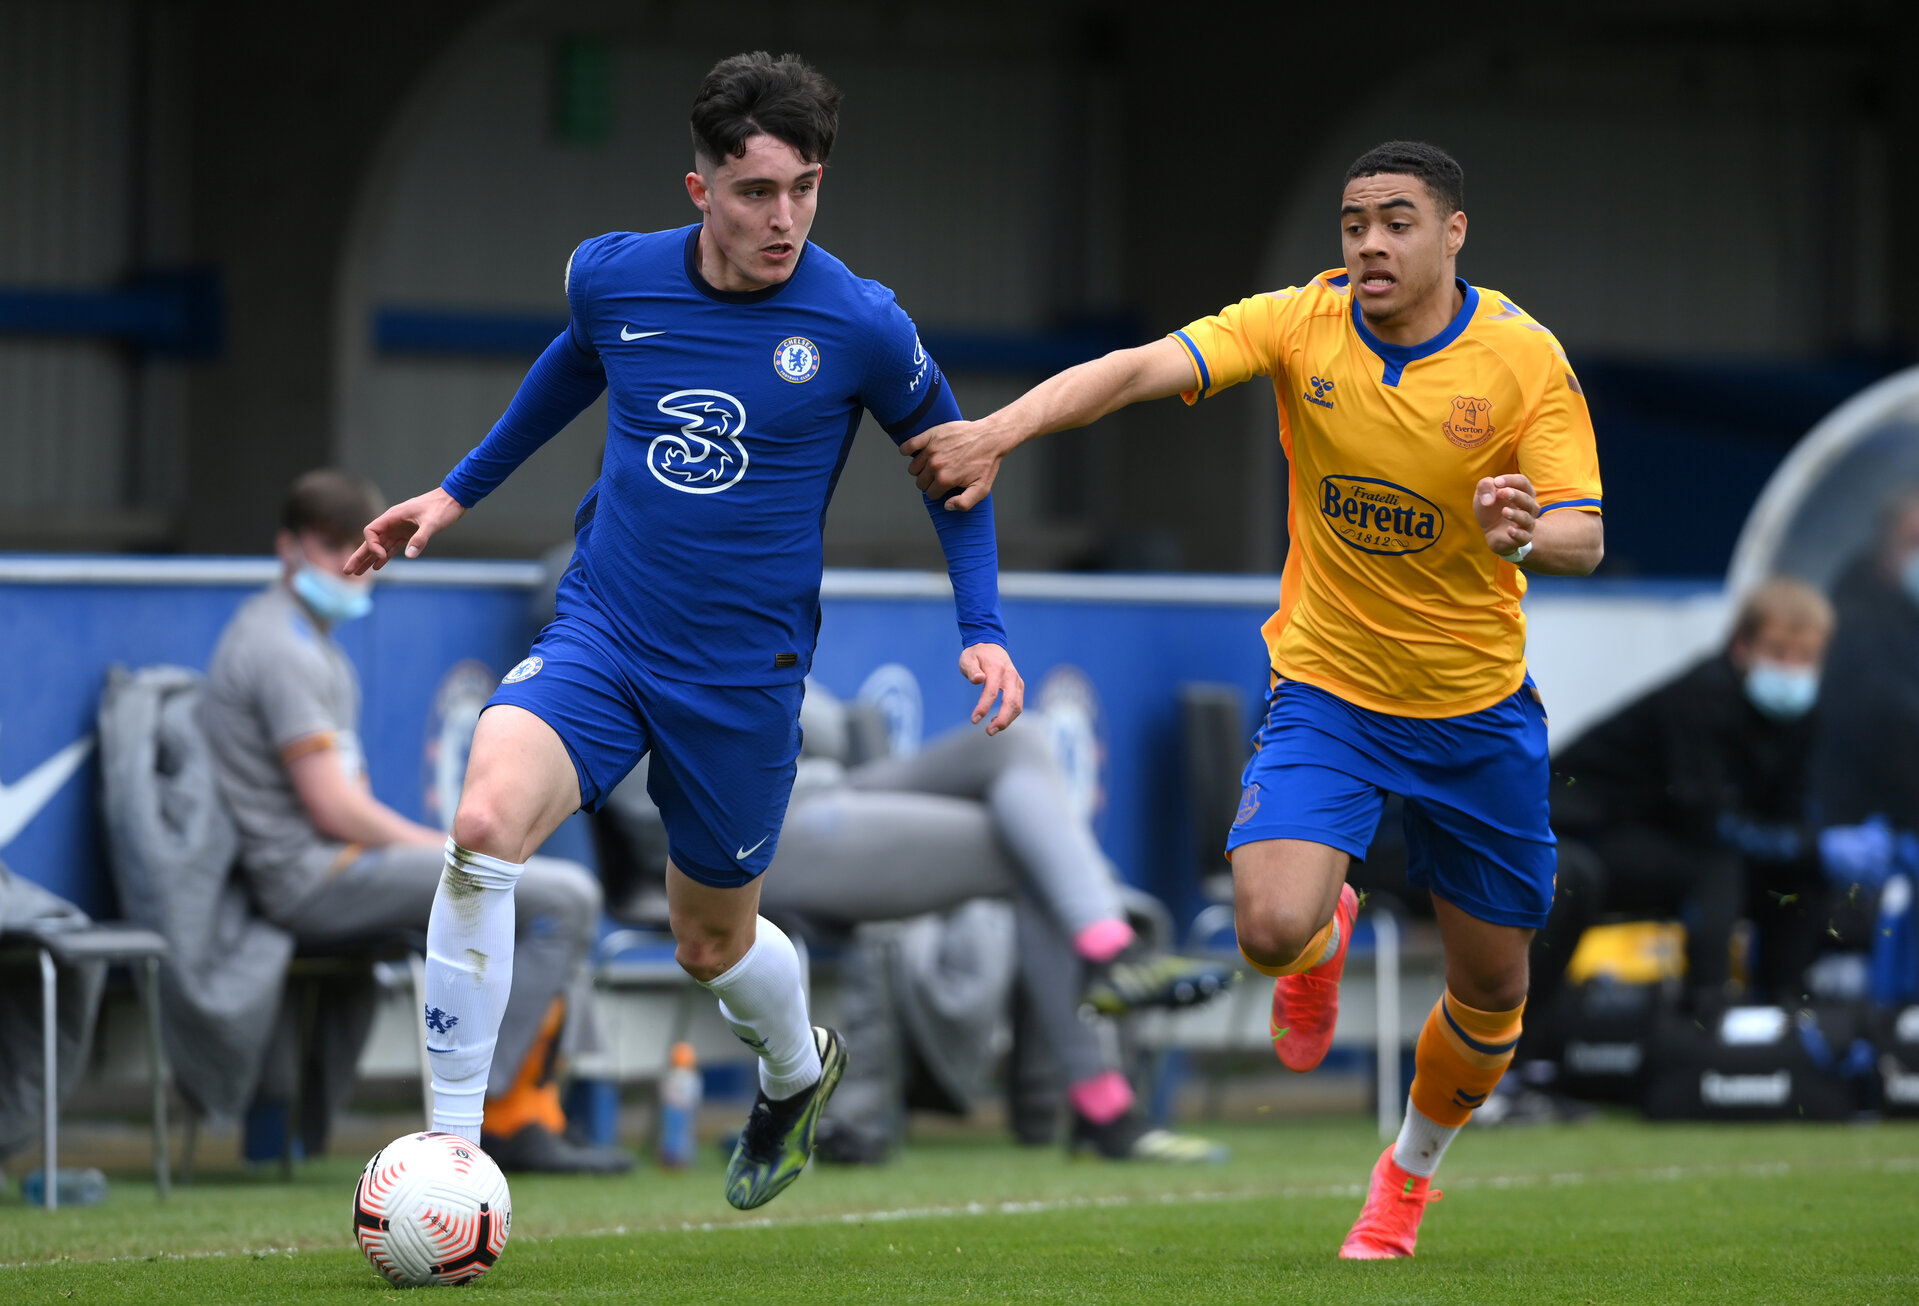 KINGSTON UPON THAMES, ENGLAND - APRIL 15: Valentino Livramento of Chelsea battles for possession with Lewis Dobbin of Everton during the FA Youth Cup Fourth round match between Chelsea and Everton at Kingsmeadow on April 15, 2021 in Kingston upon Thames, England. Sporting stadiums around the UK remain under strict restrictions due to the Coronavirus Pandemic as Government social distancing laws prohibit fans inside venues resulting in games being played behind closed doors. (Photo by Mike Hewitt/Getty Images)